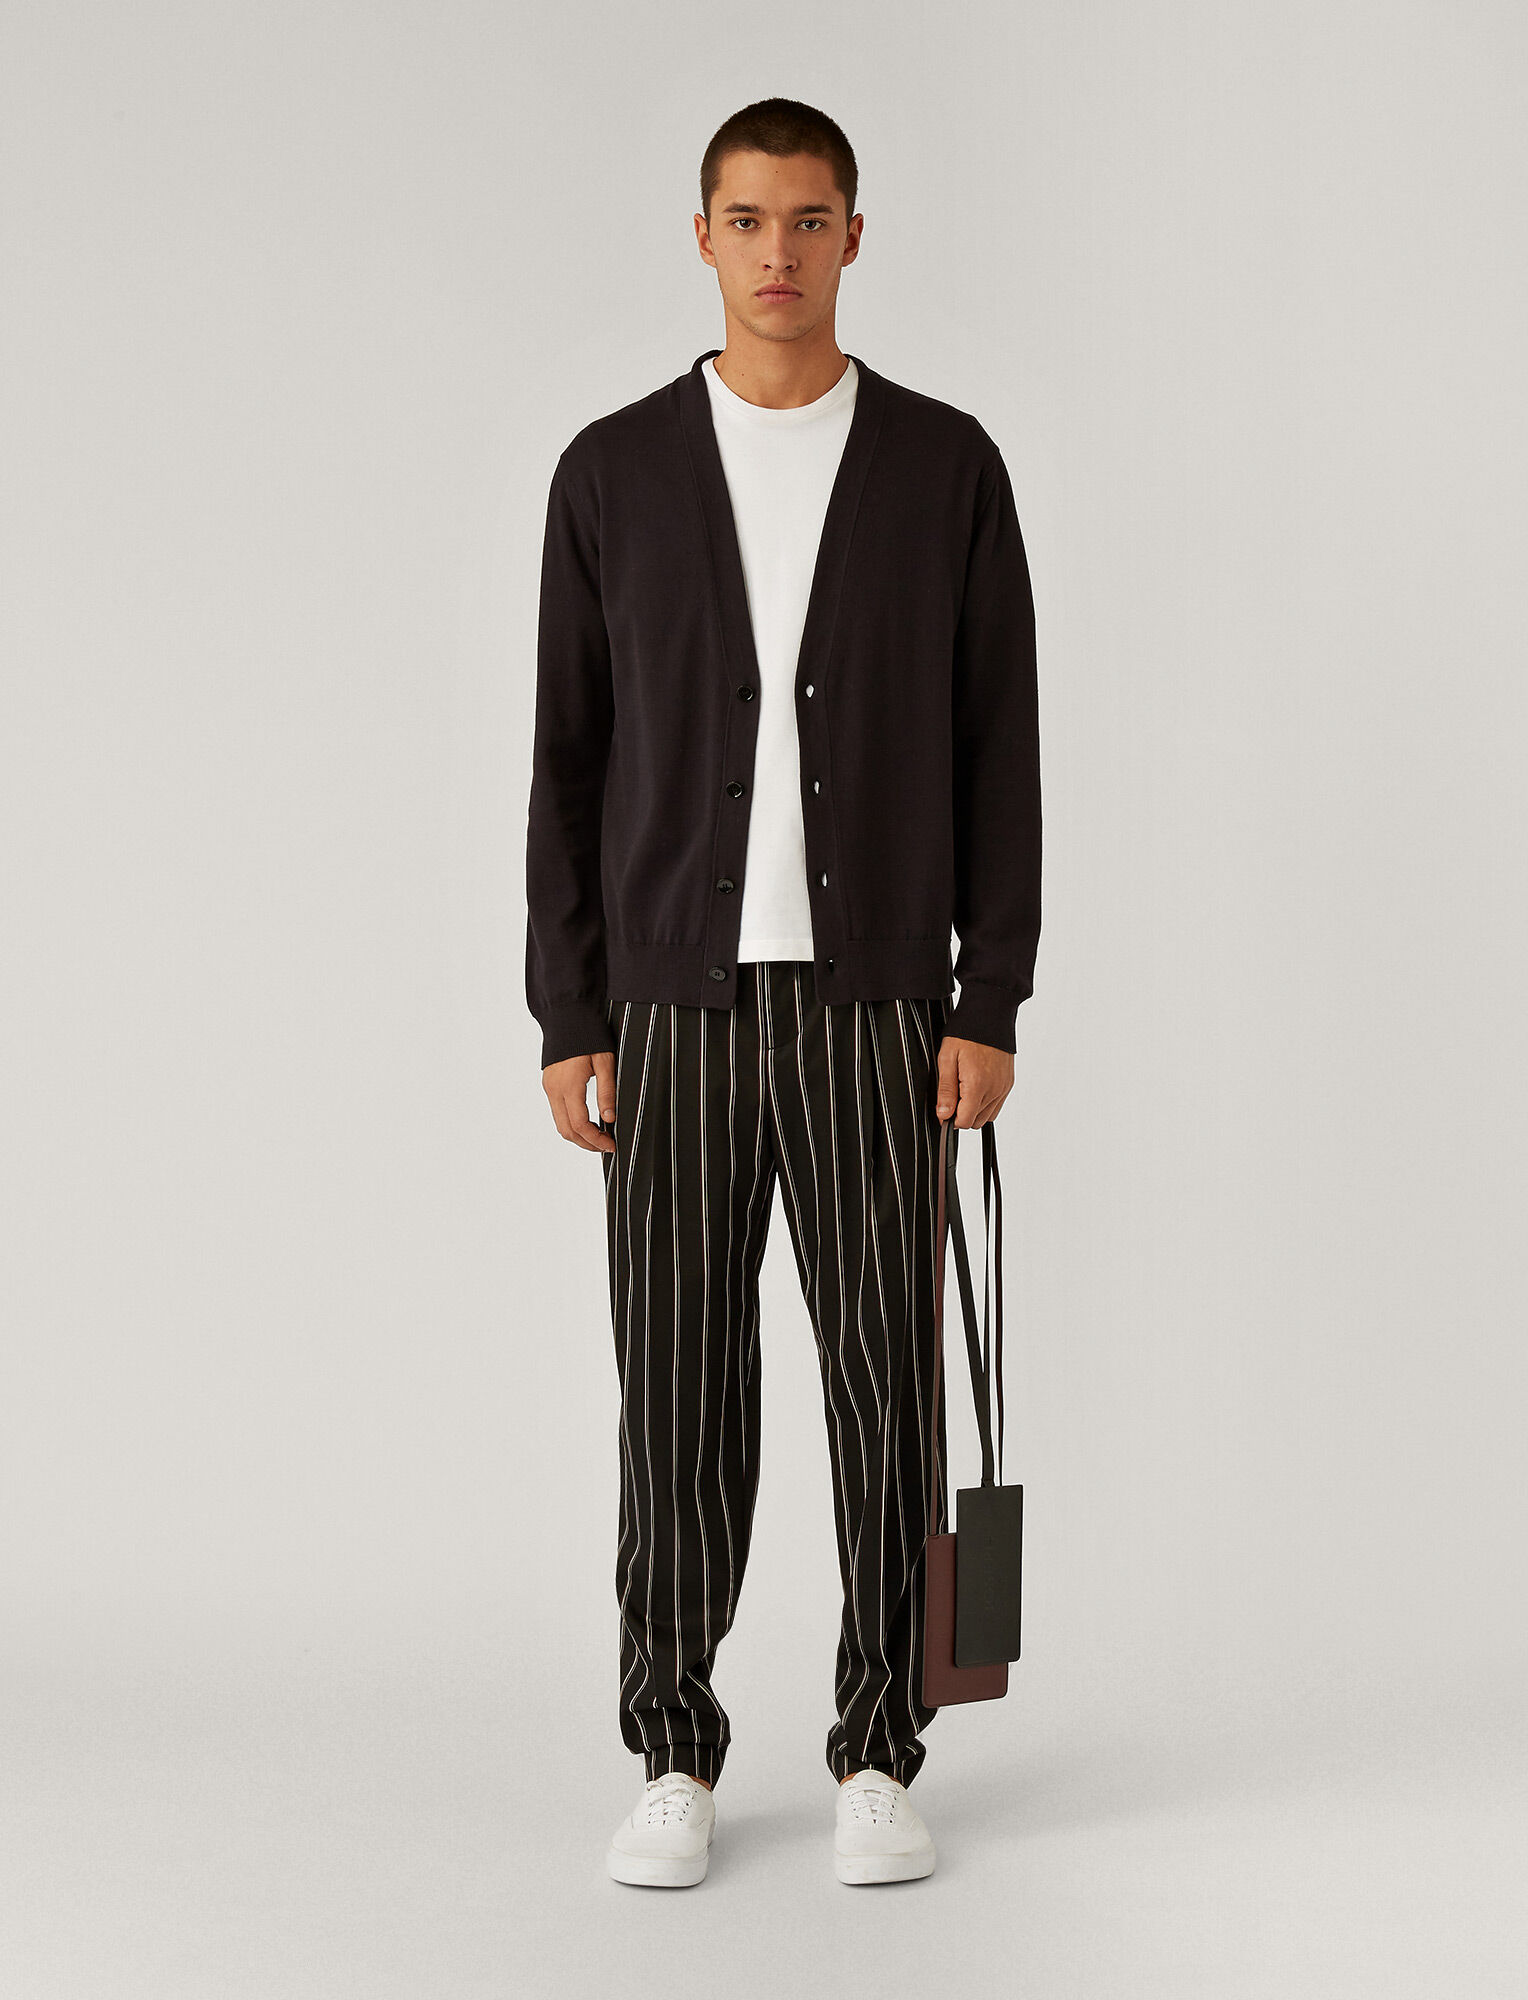 Joseph, V Neck Stripe Block Cardigan, in Black